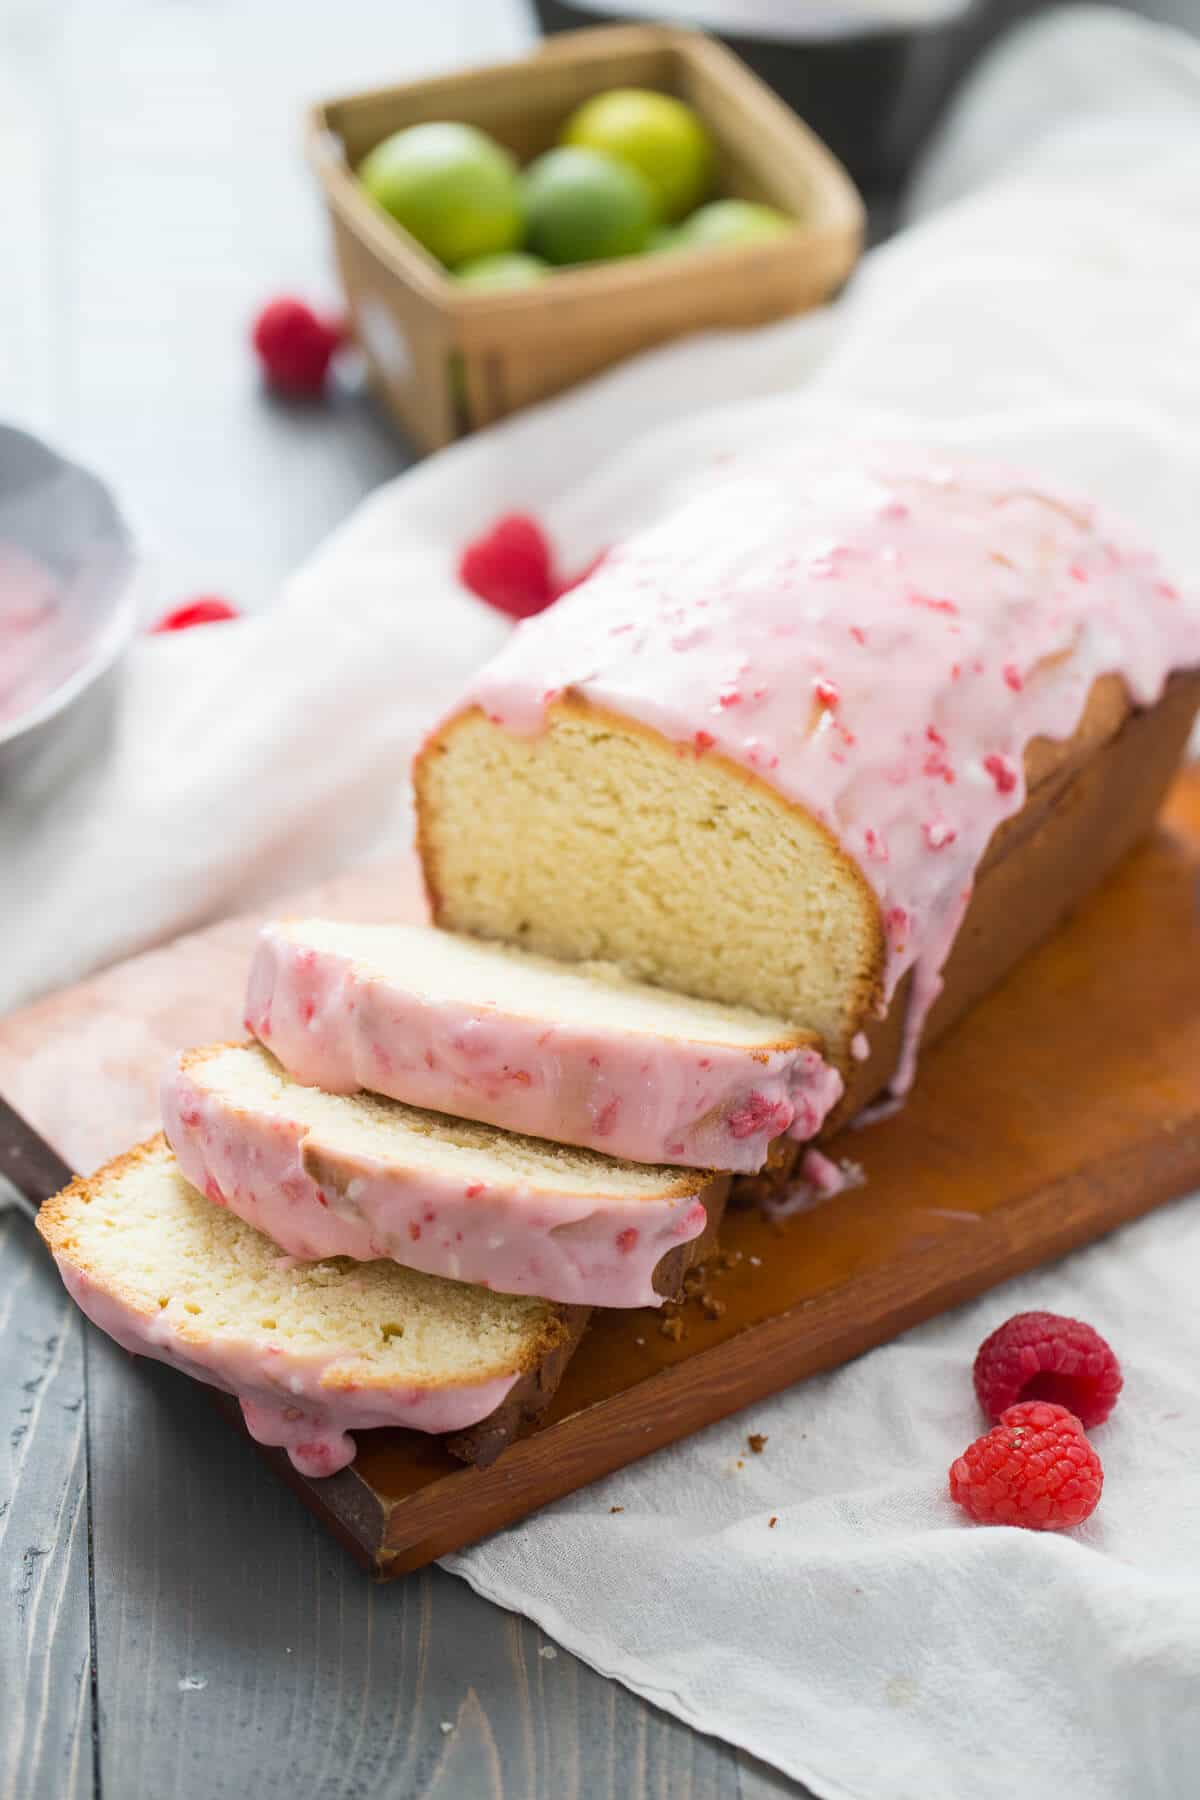 Raspberry Glazed Key Lime Cake is amazing! This pound cake loaf is a tangy key lime cake that is drizzled with a sweet, homemade raspberry glaze. Everything about this easy cake screams happiness!